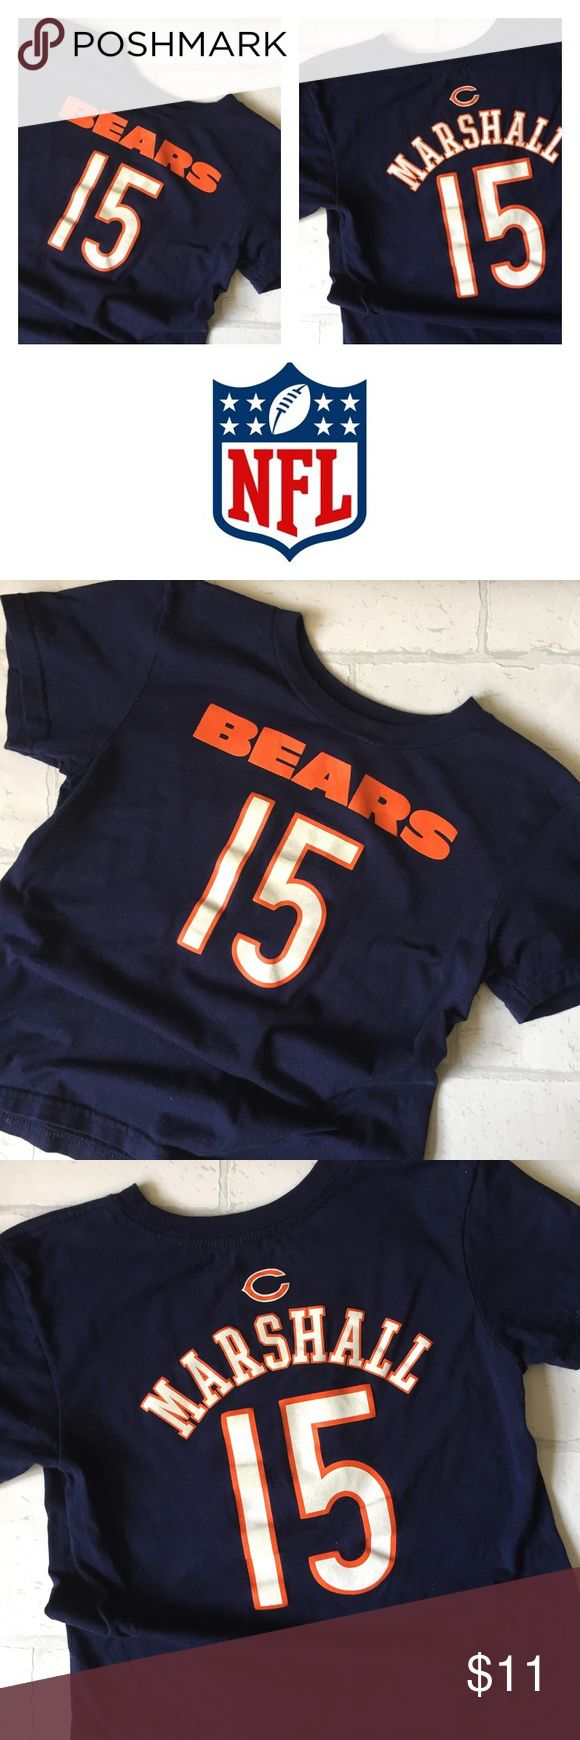 NWOT Official NFL Chicago Bears Boys Shirt 6x/7 This is for the true fan. This top is a 6x/7 and is official NFL gear. Brand new without tag. Never worn. Properly stored. NFL Shirts & Tops